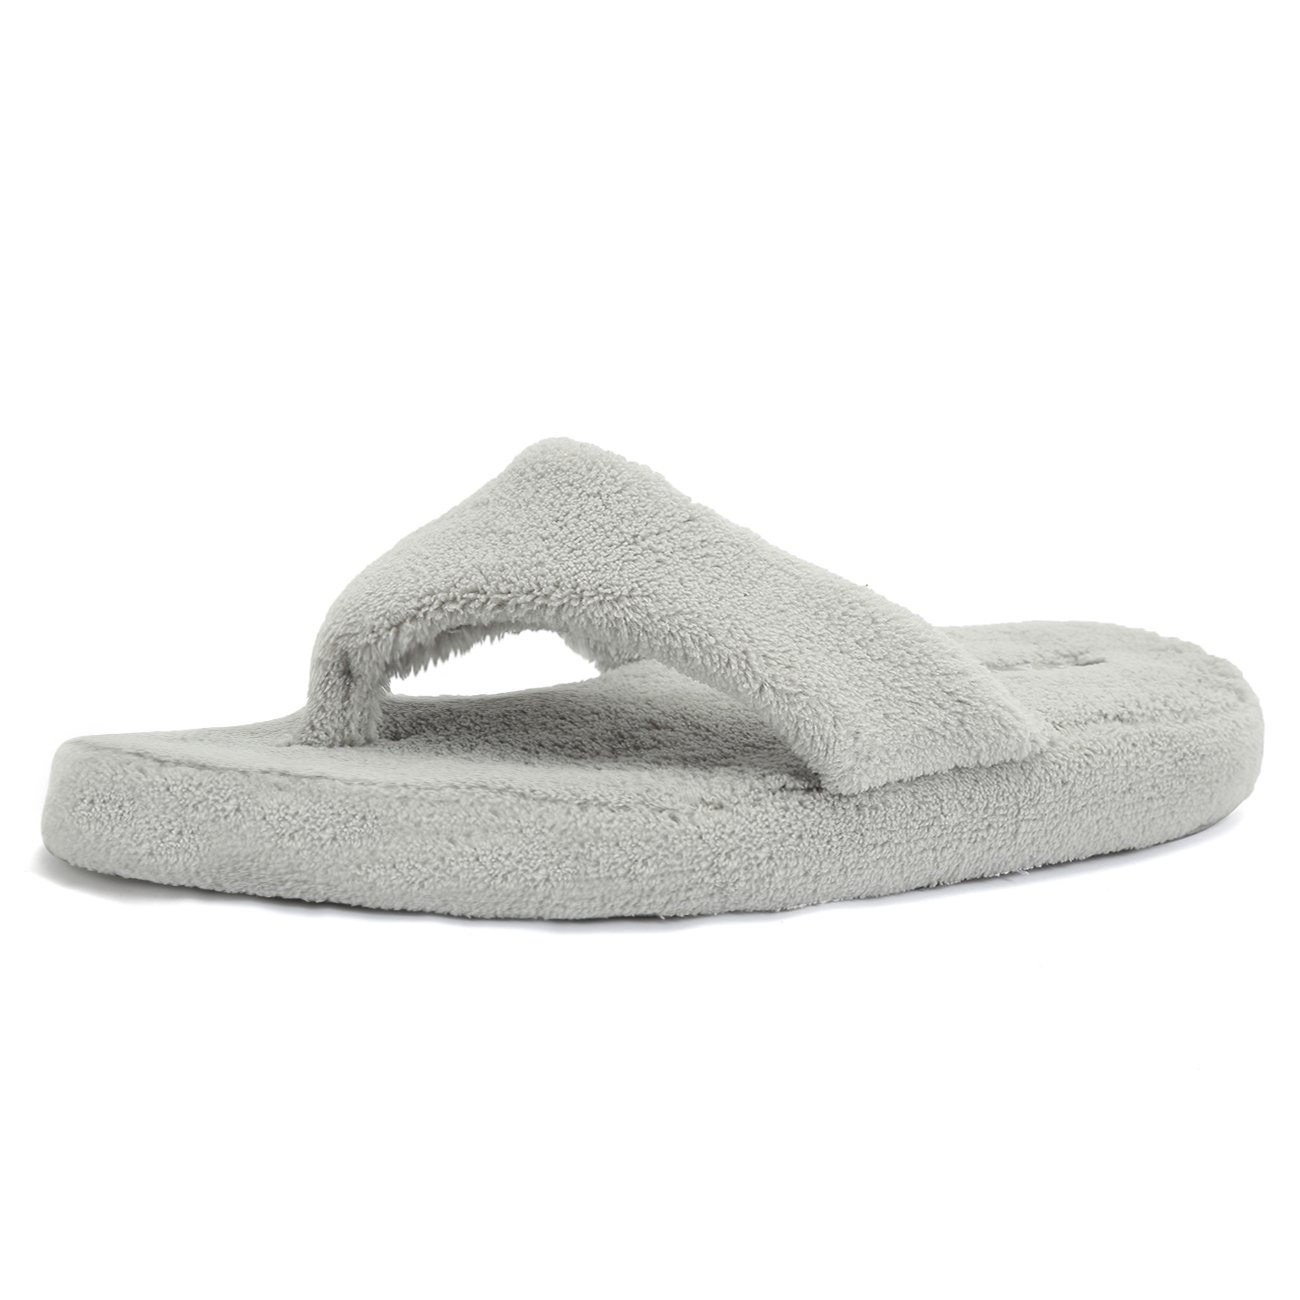 CIOR Fantiny Women's Spa Thong Slippers Flip Flops Terry House Shoes Indoor & Outdoor-U118WMT003-lightgray-38.39